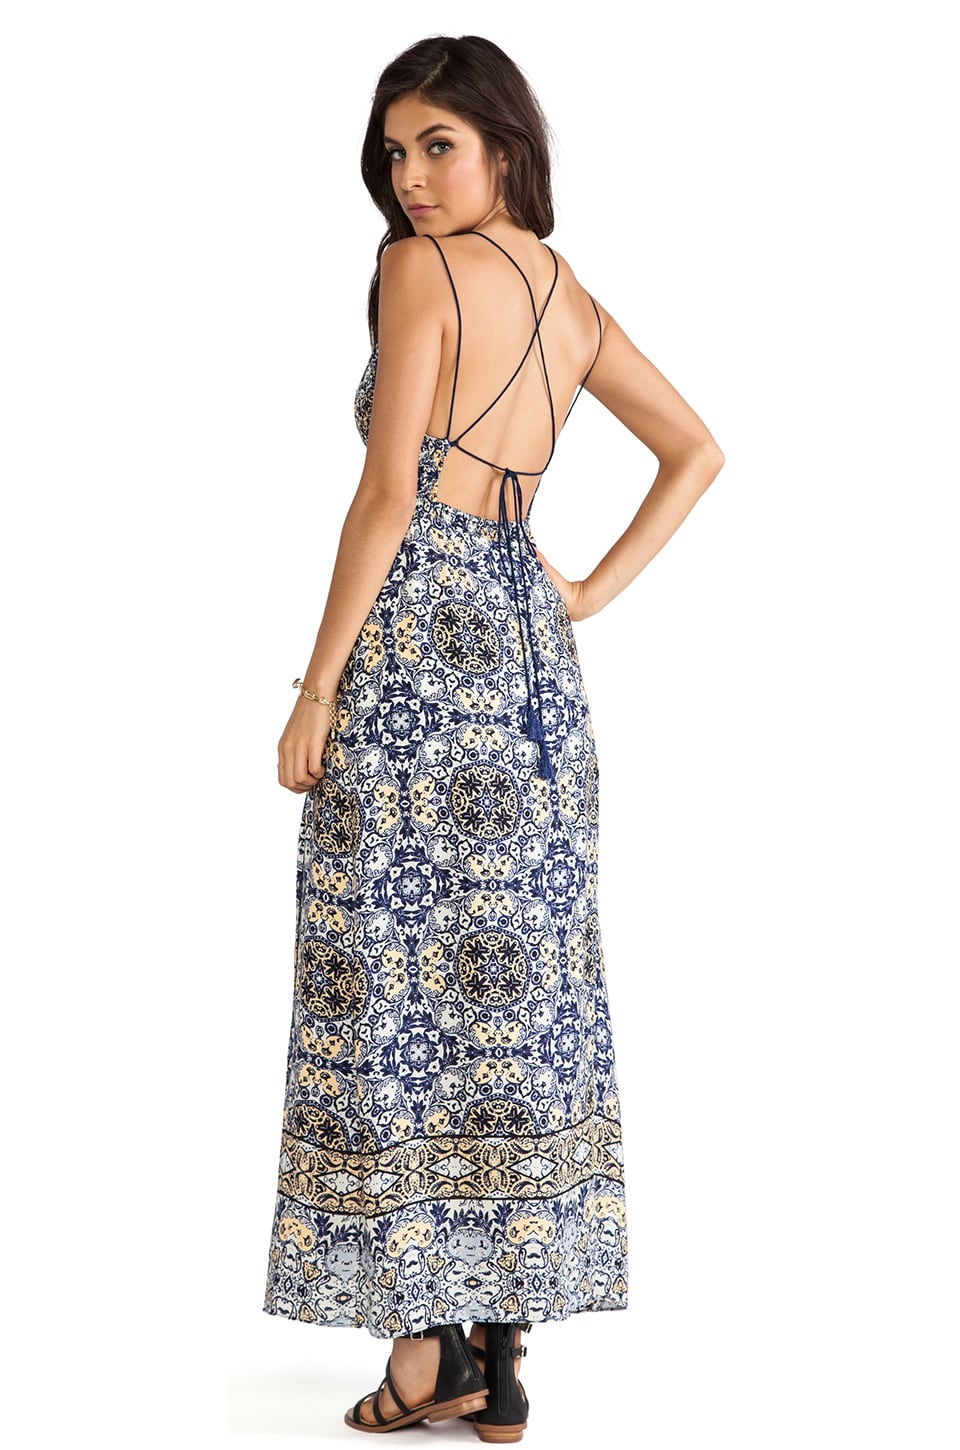 Dolce Vita Ayat Dress in Blue Print